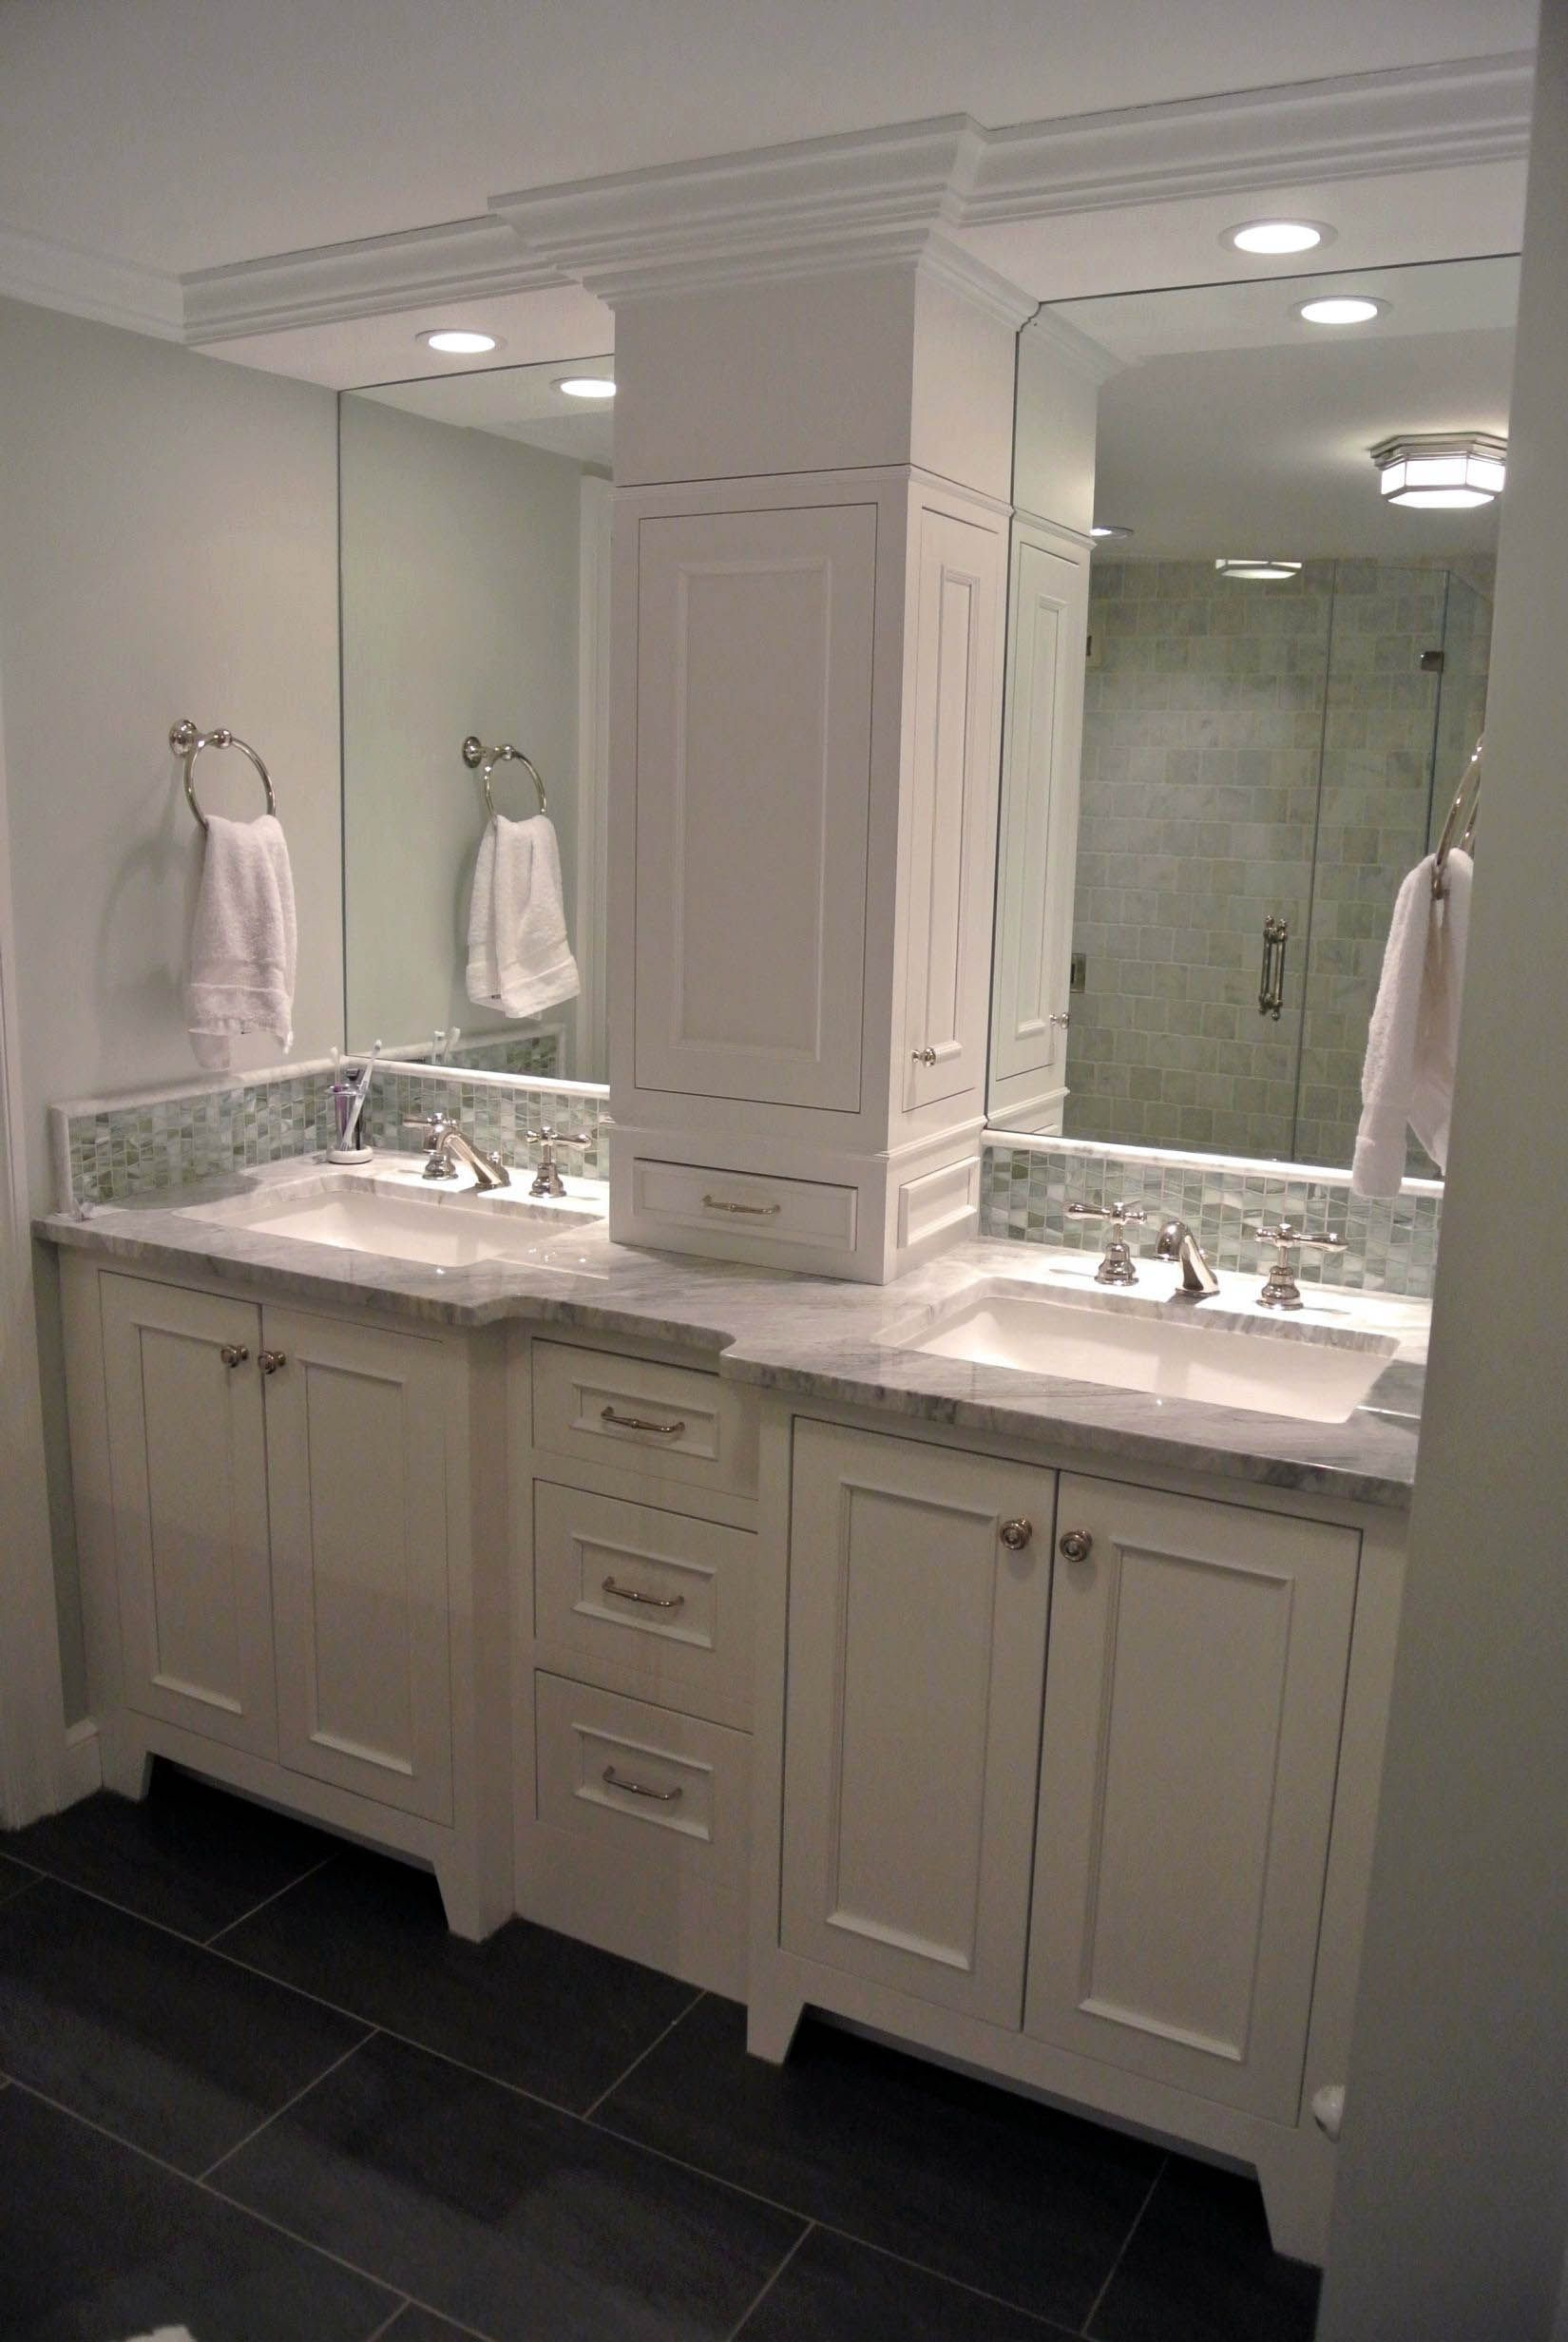 Unique bathroom storage solutions for small spaces only in - Unique bathroom vanities for small spaces ...